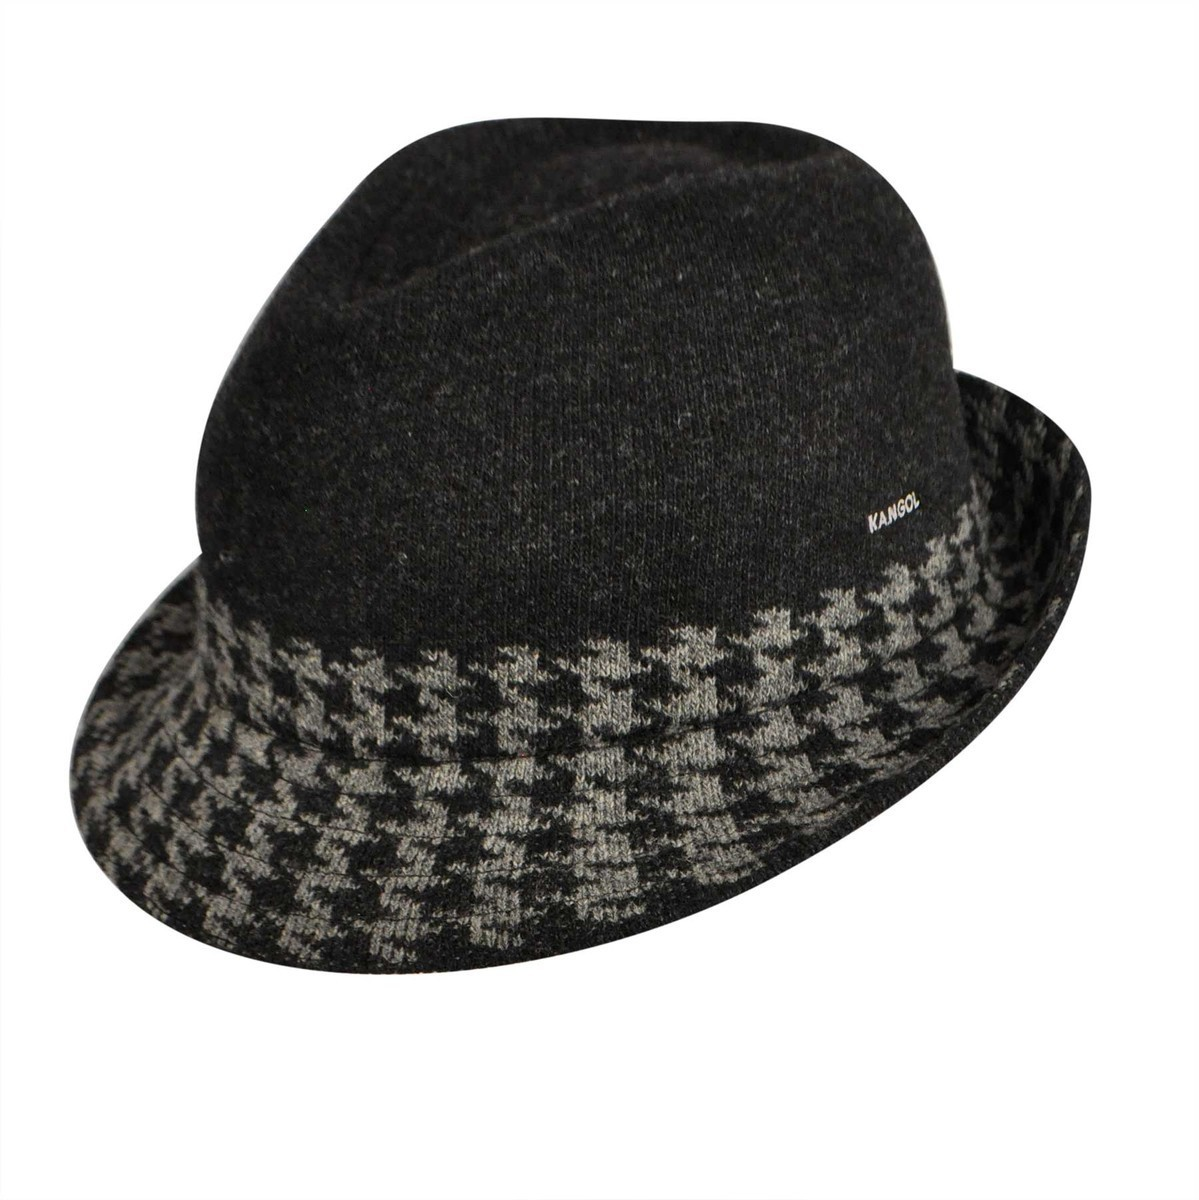 Kangol カンゴール Hounds Stripe Arnold BLACK Trilby 帽子 BLACK